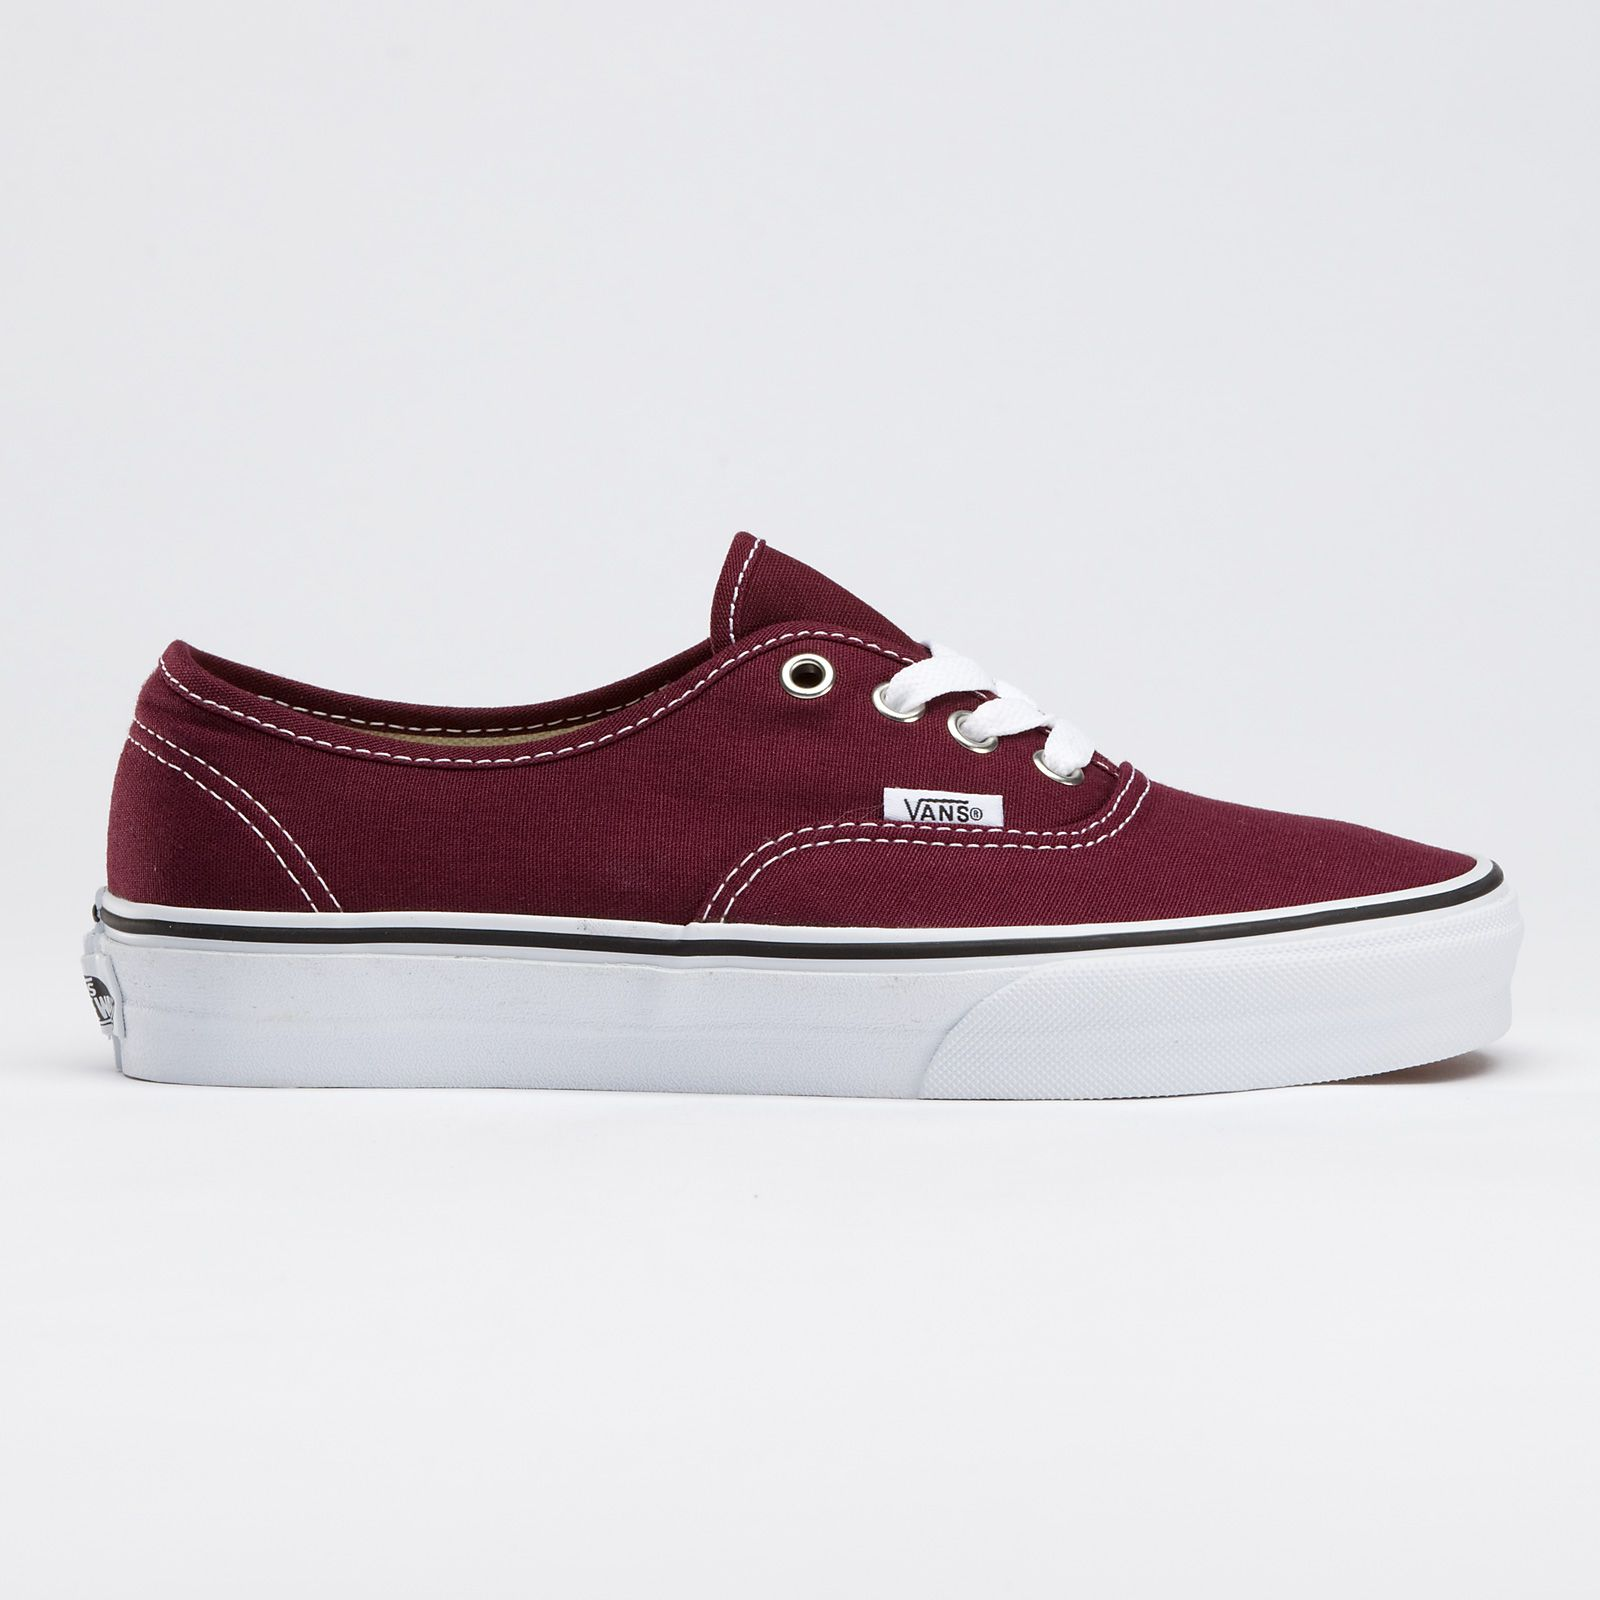 Vans Canvas Authentic - Port Royal Red//I might just end up with a